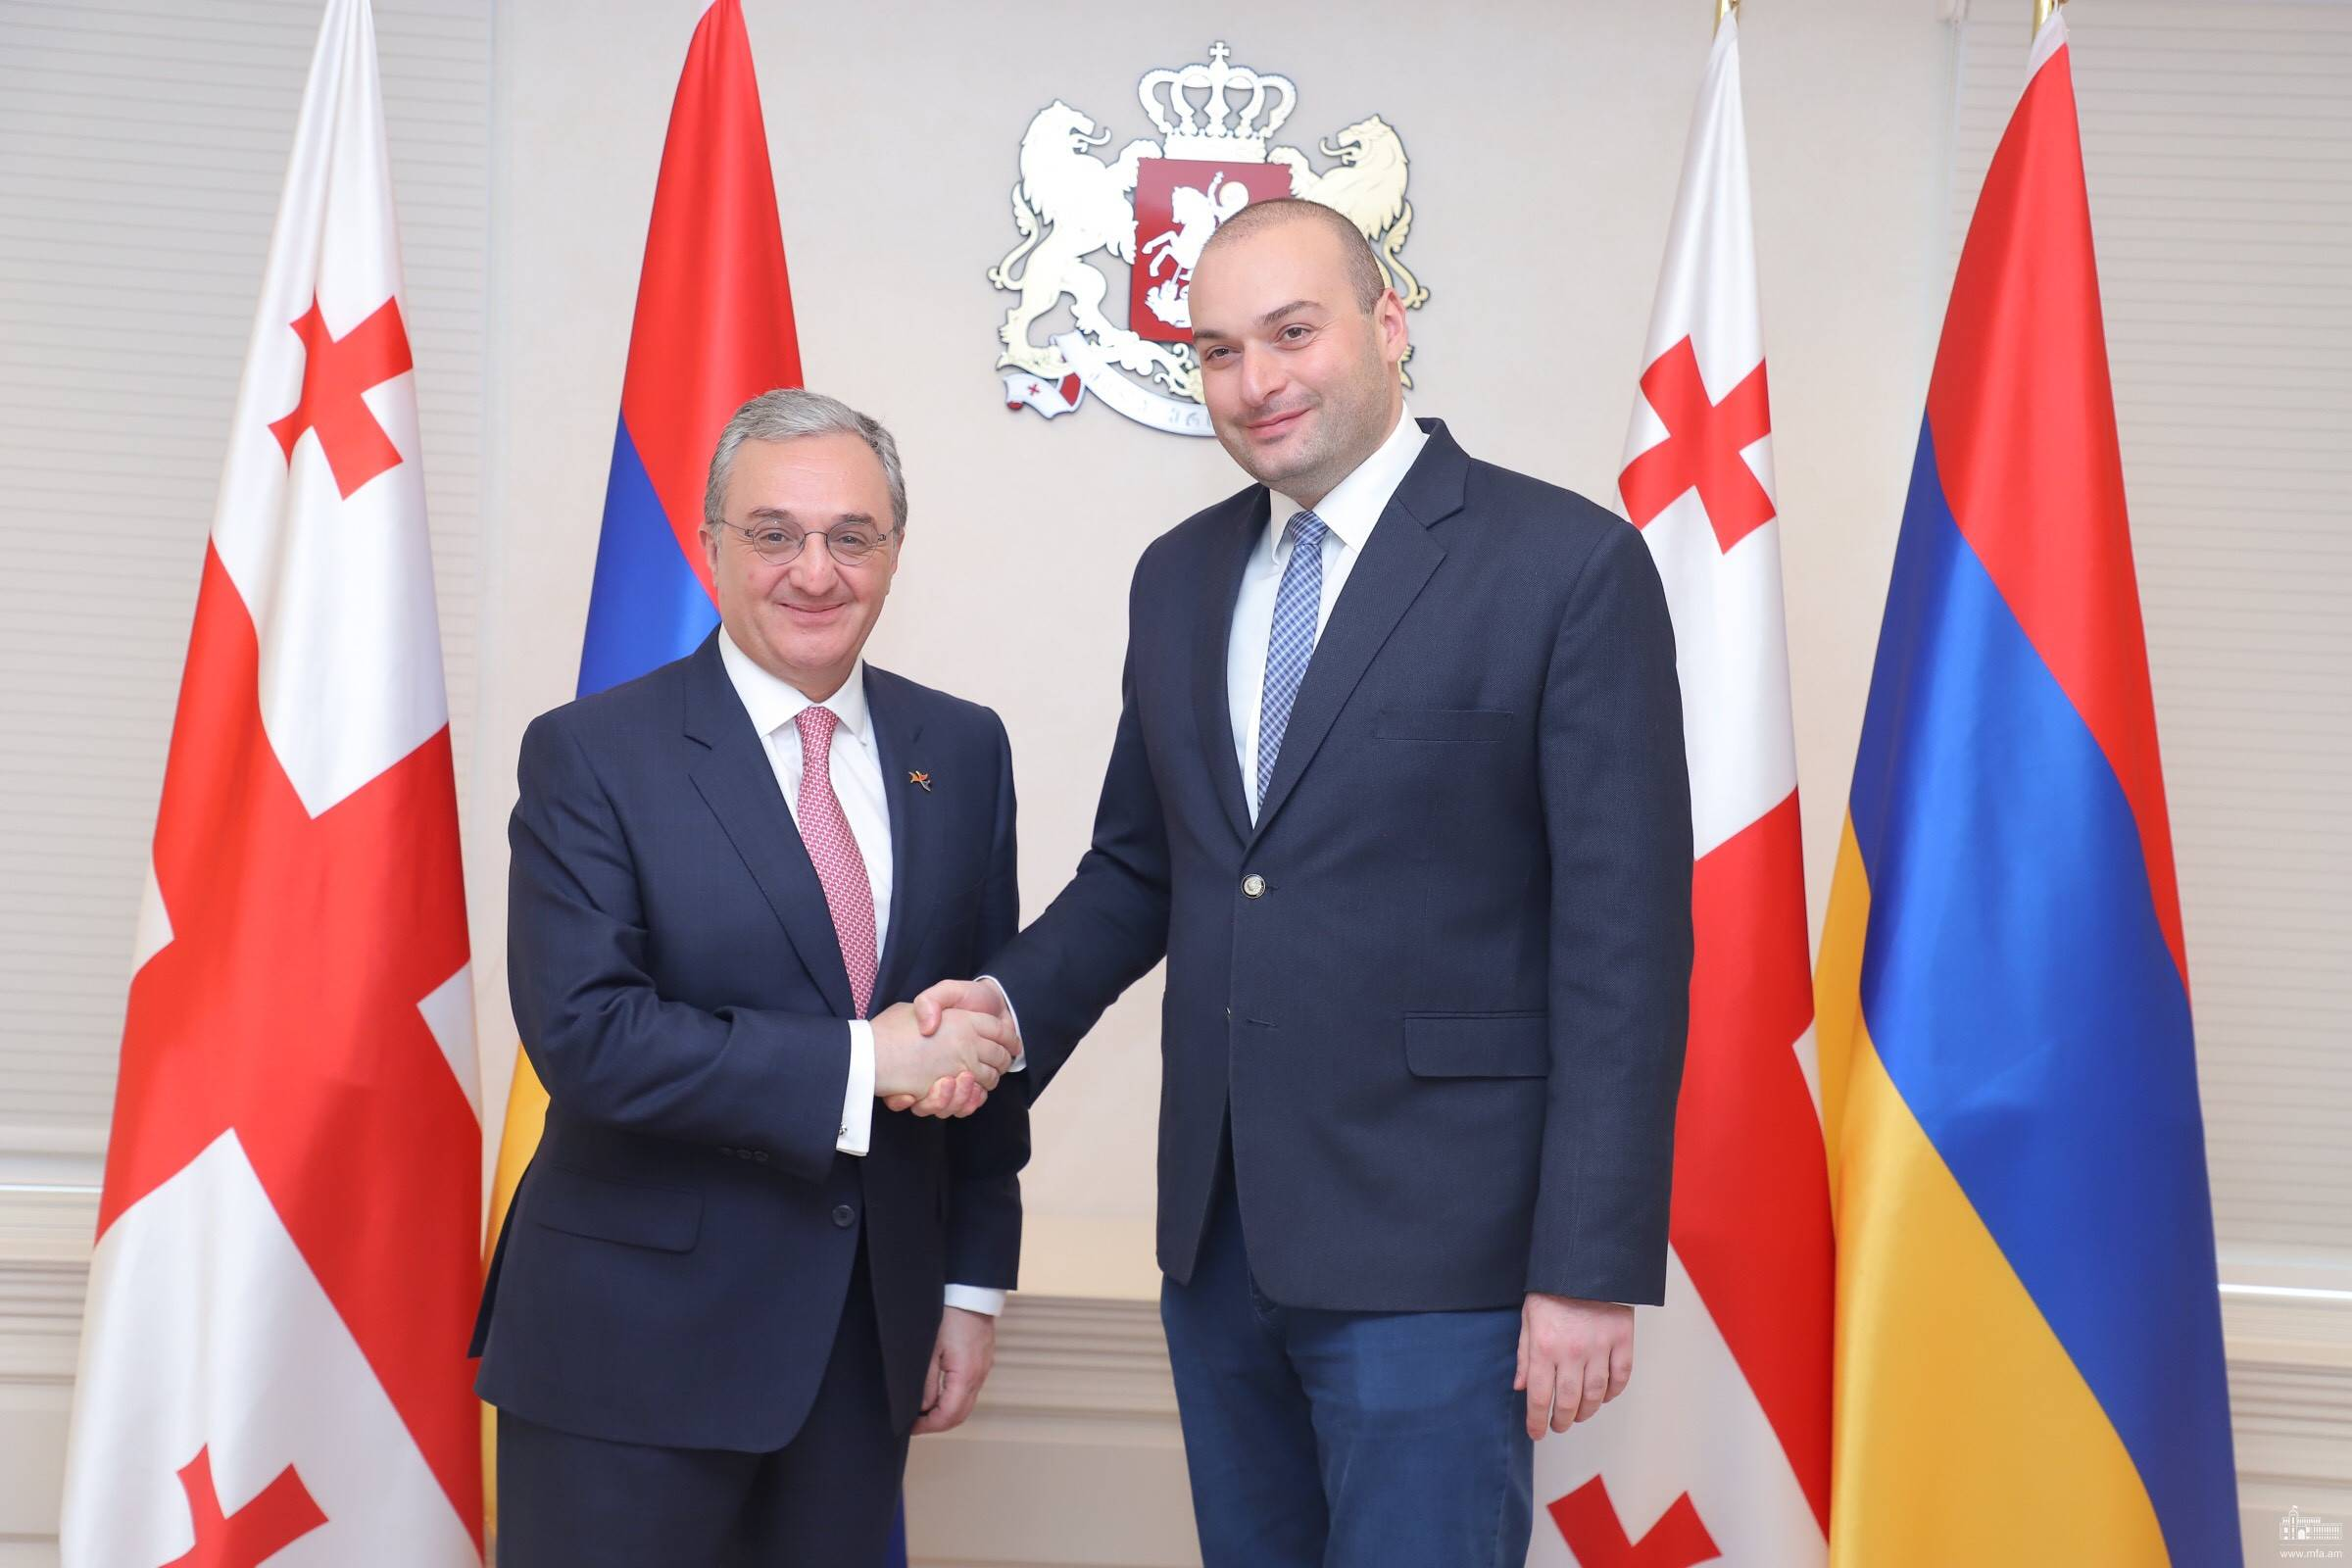 The meeting of Zohrab Mnatsakanyan with Mamuka Bakhtadze, the Prime Minister of Georgia